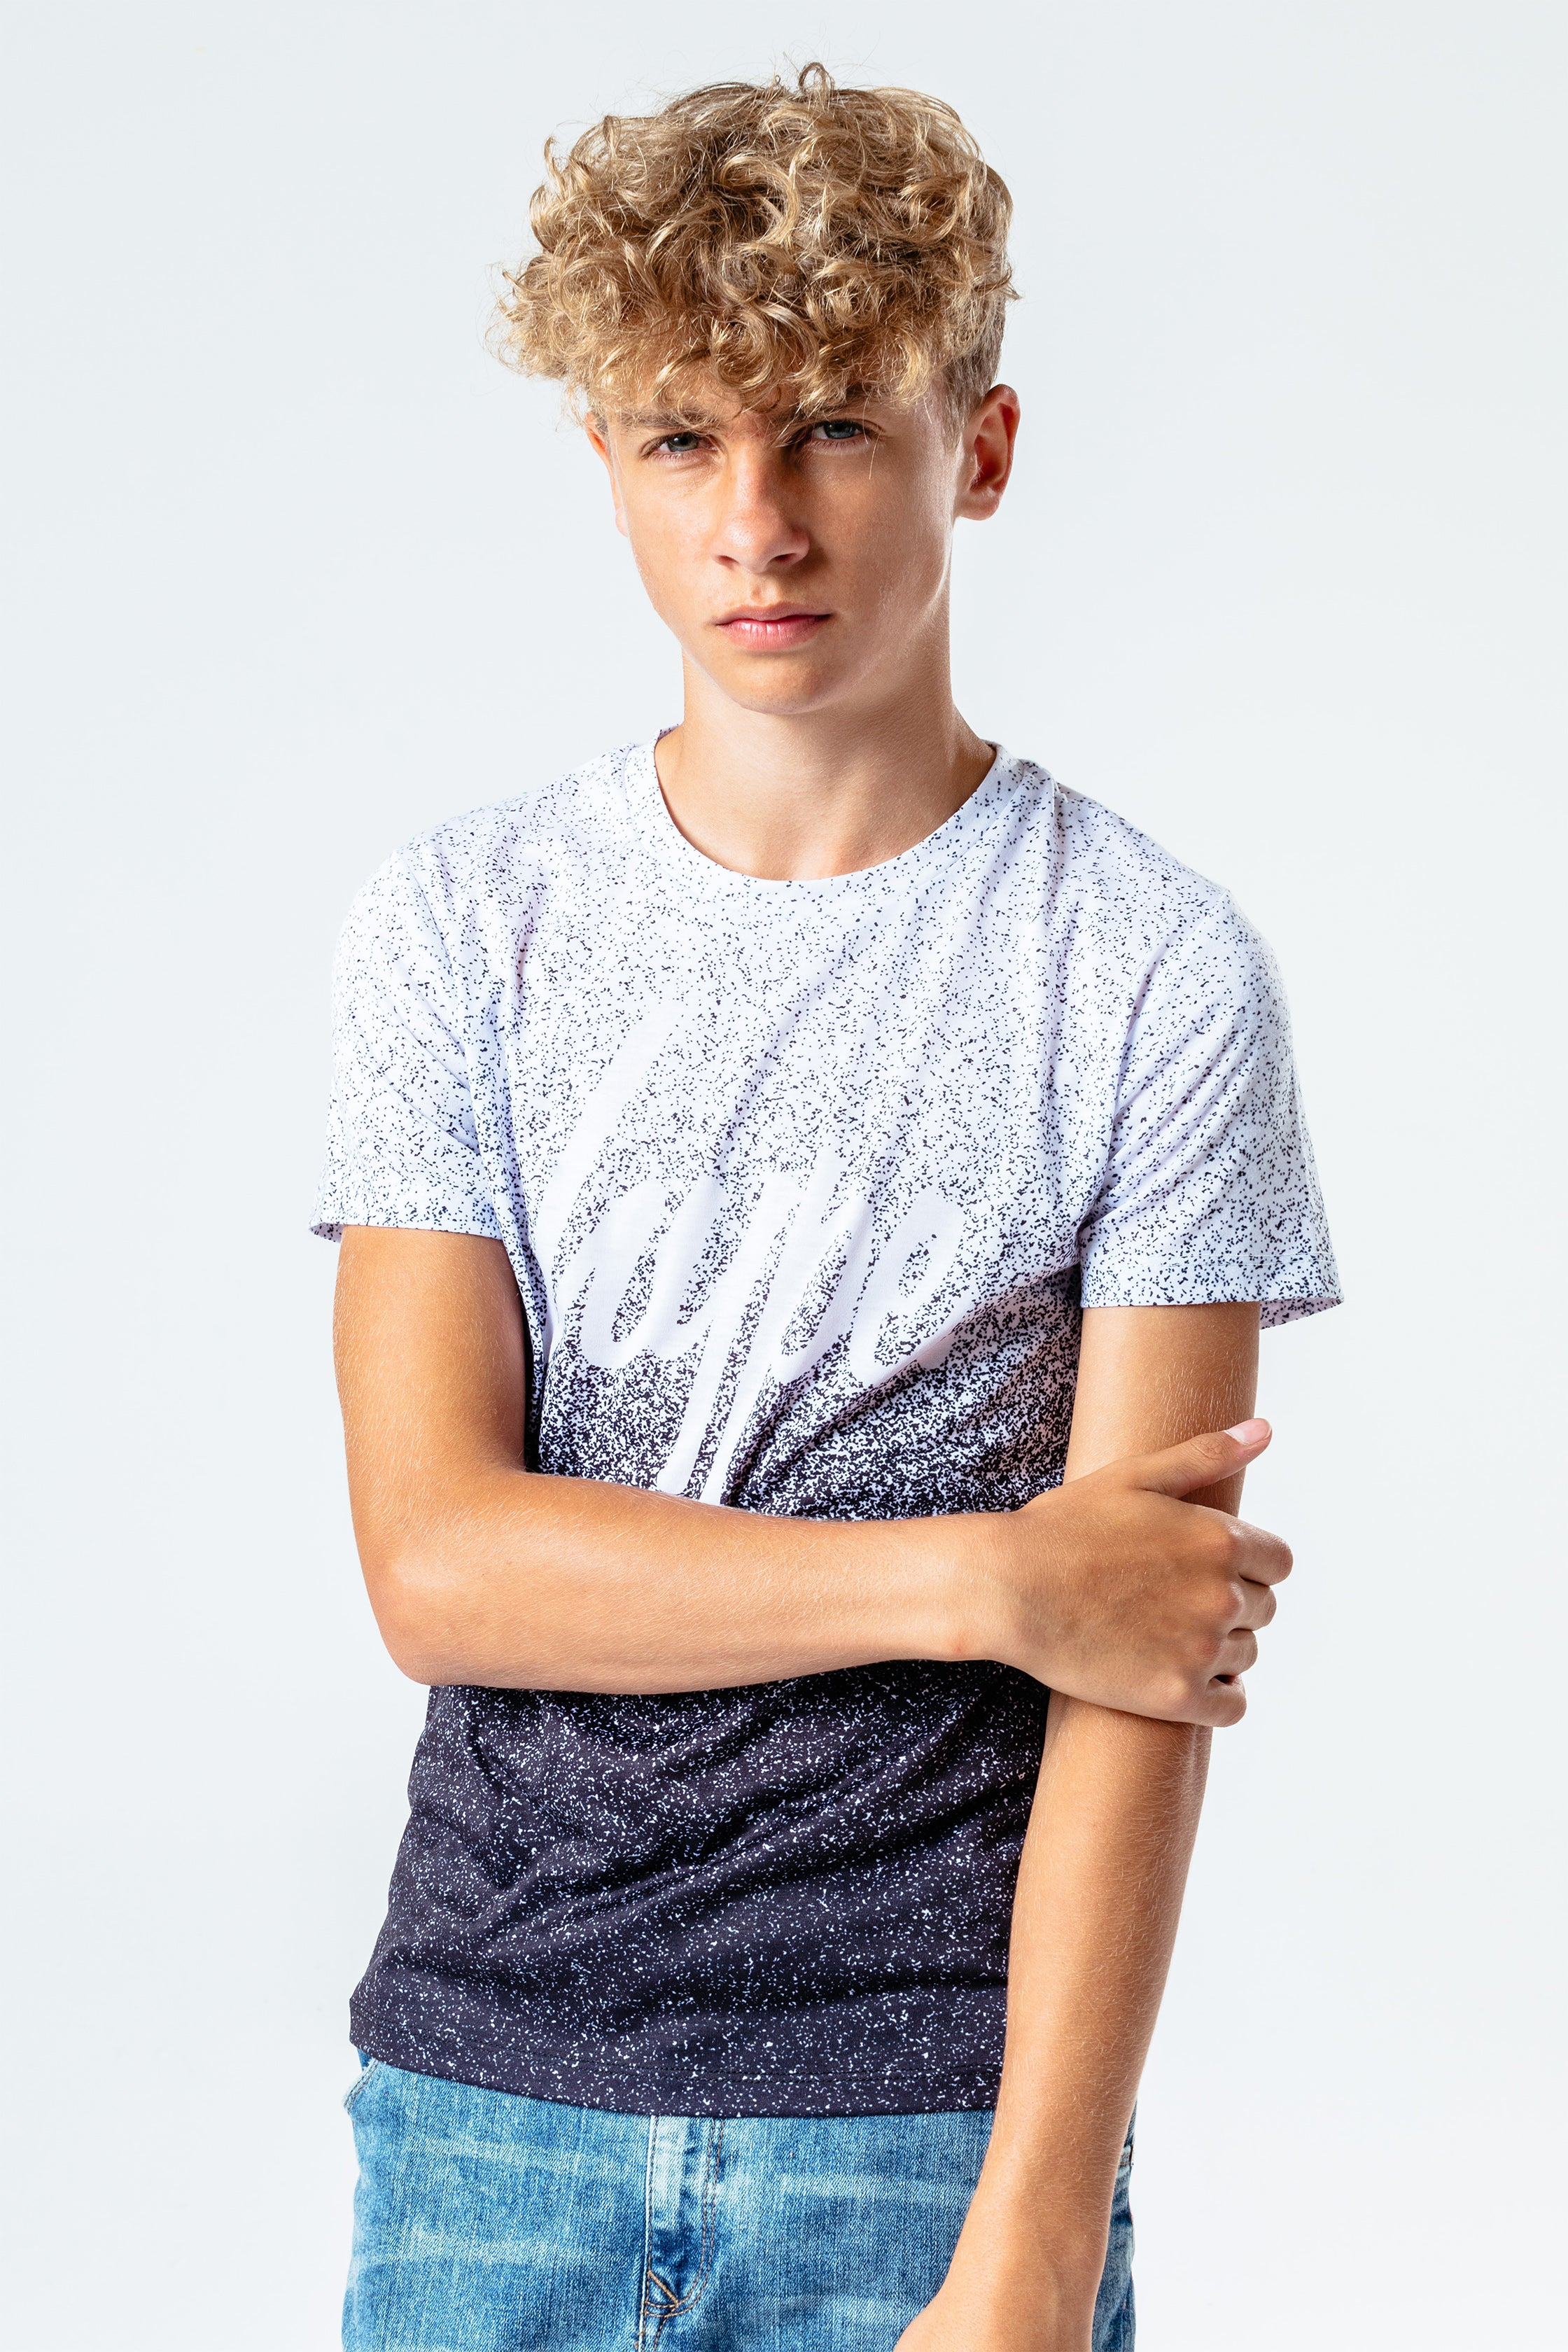 Hype Speckle Fade Kids White/black T-Shirt | Size 7/8Y